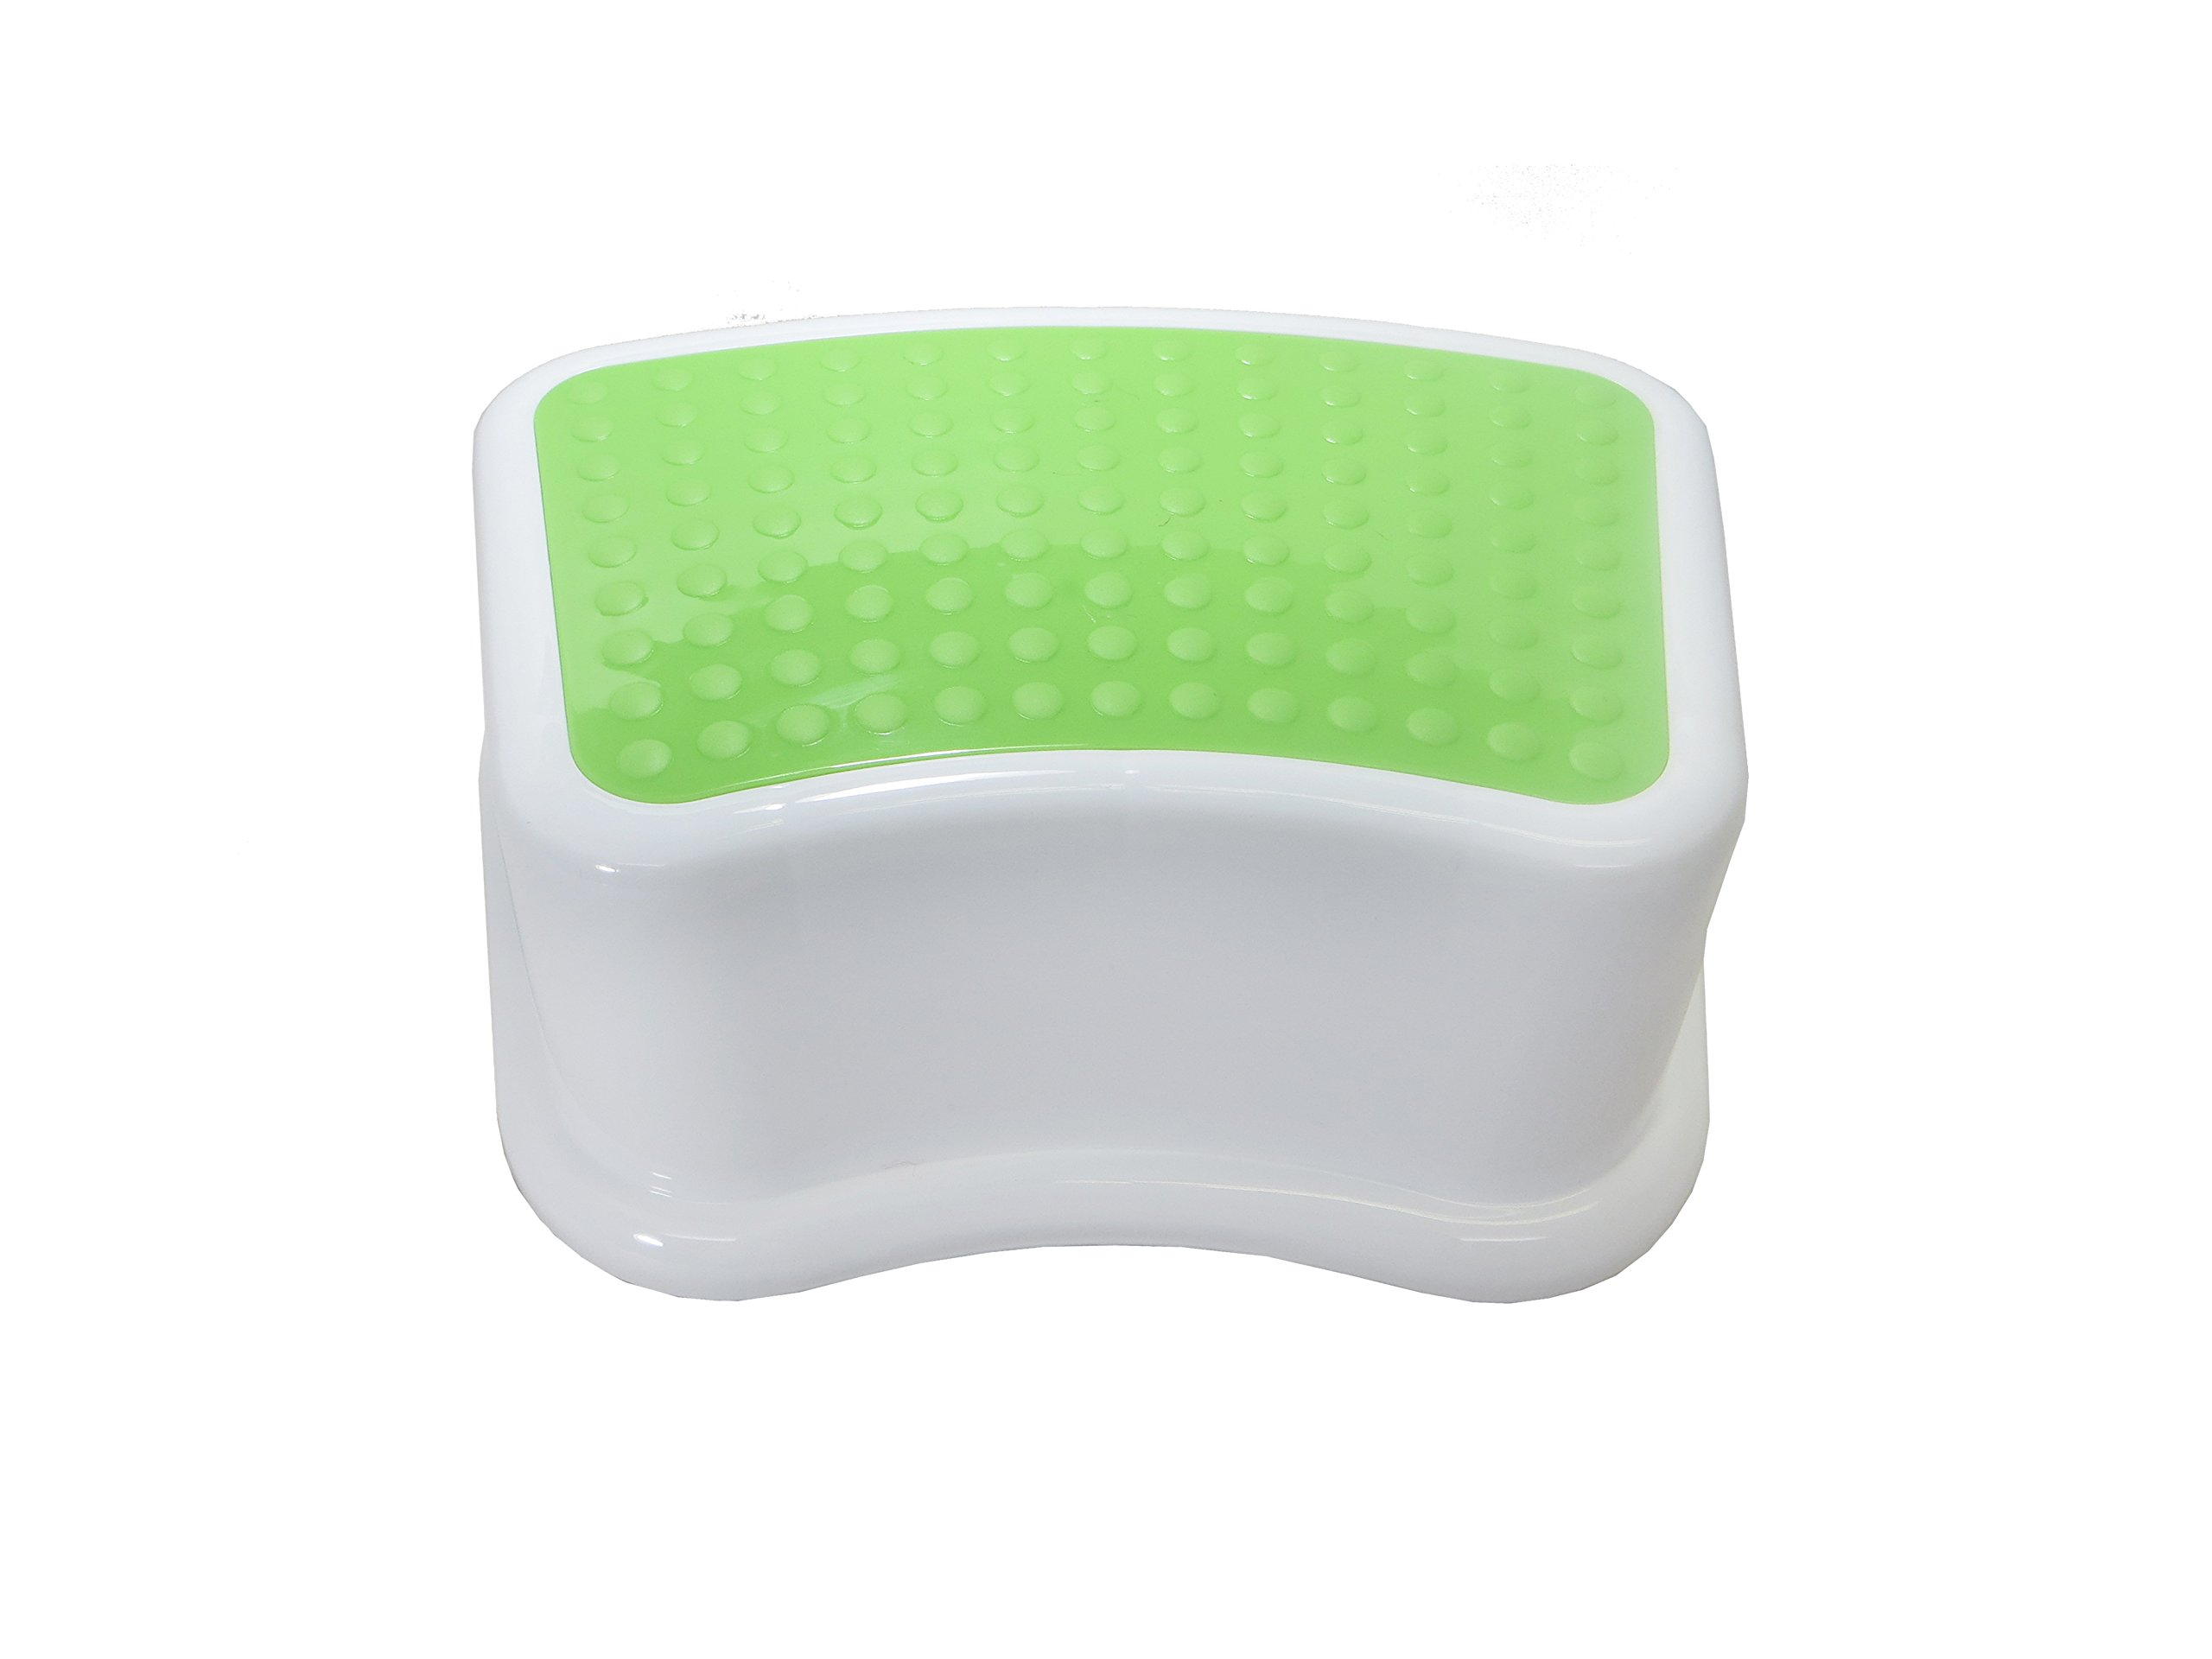 Kids Best Friend Kids Green Step Stool, Take It Along in Bedroom, Kitchen, Bathroom and Living Room. Great for Potty Training And Toy Room Gift by Angels